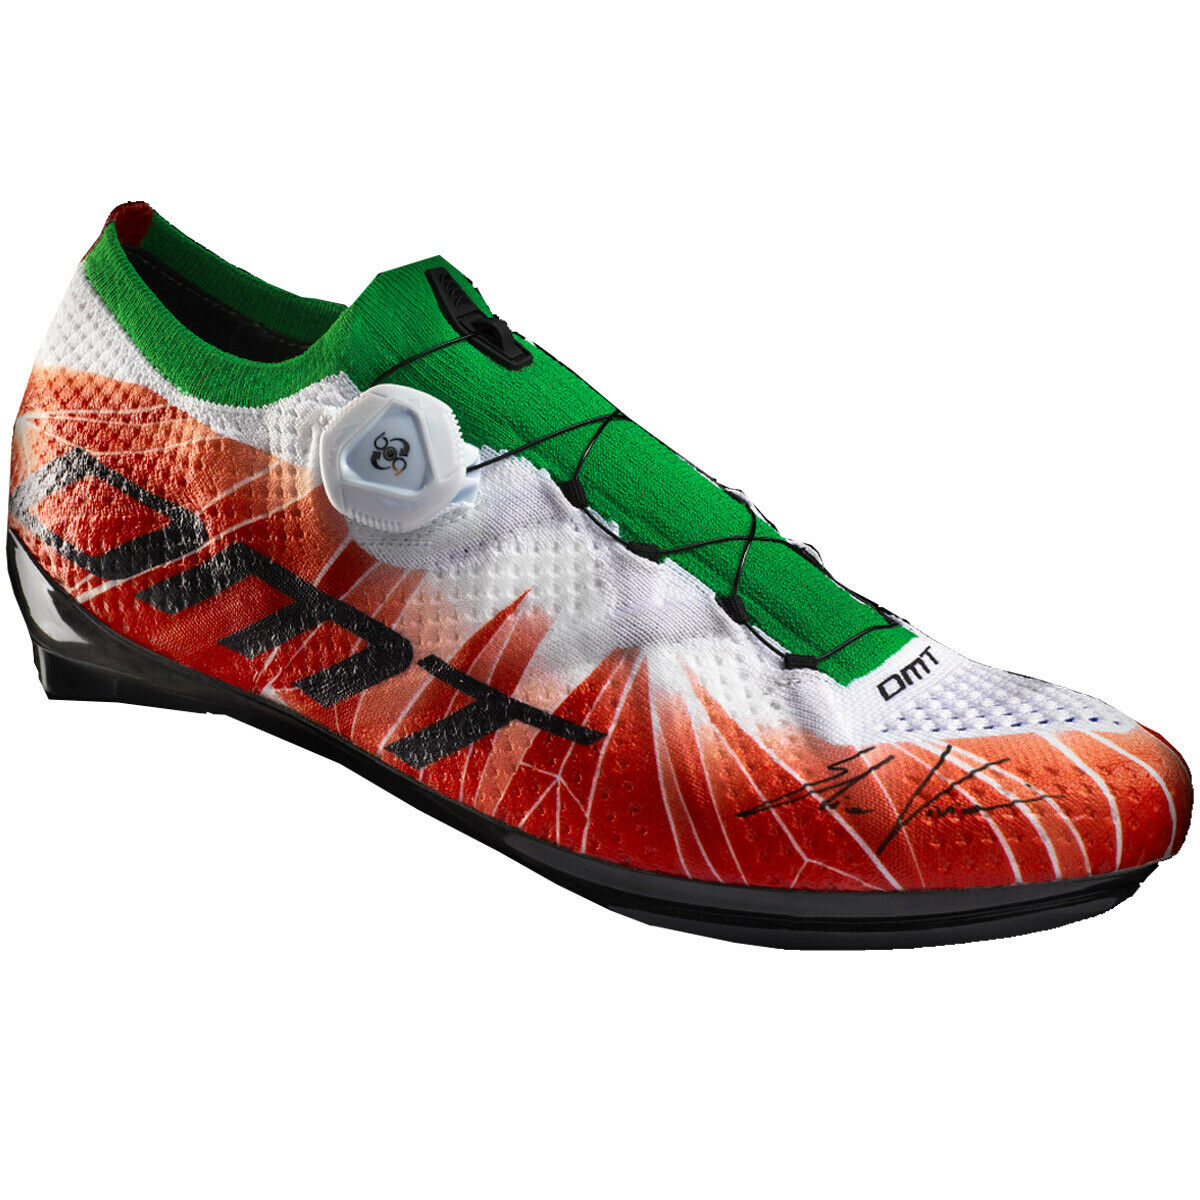 shoes CICLISMO DMT KR1 ITALIAN CHAMPION LIMITED EDITION taglia 42